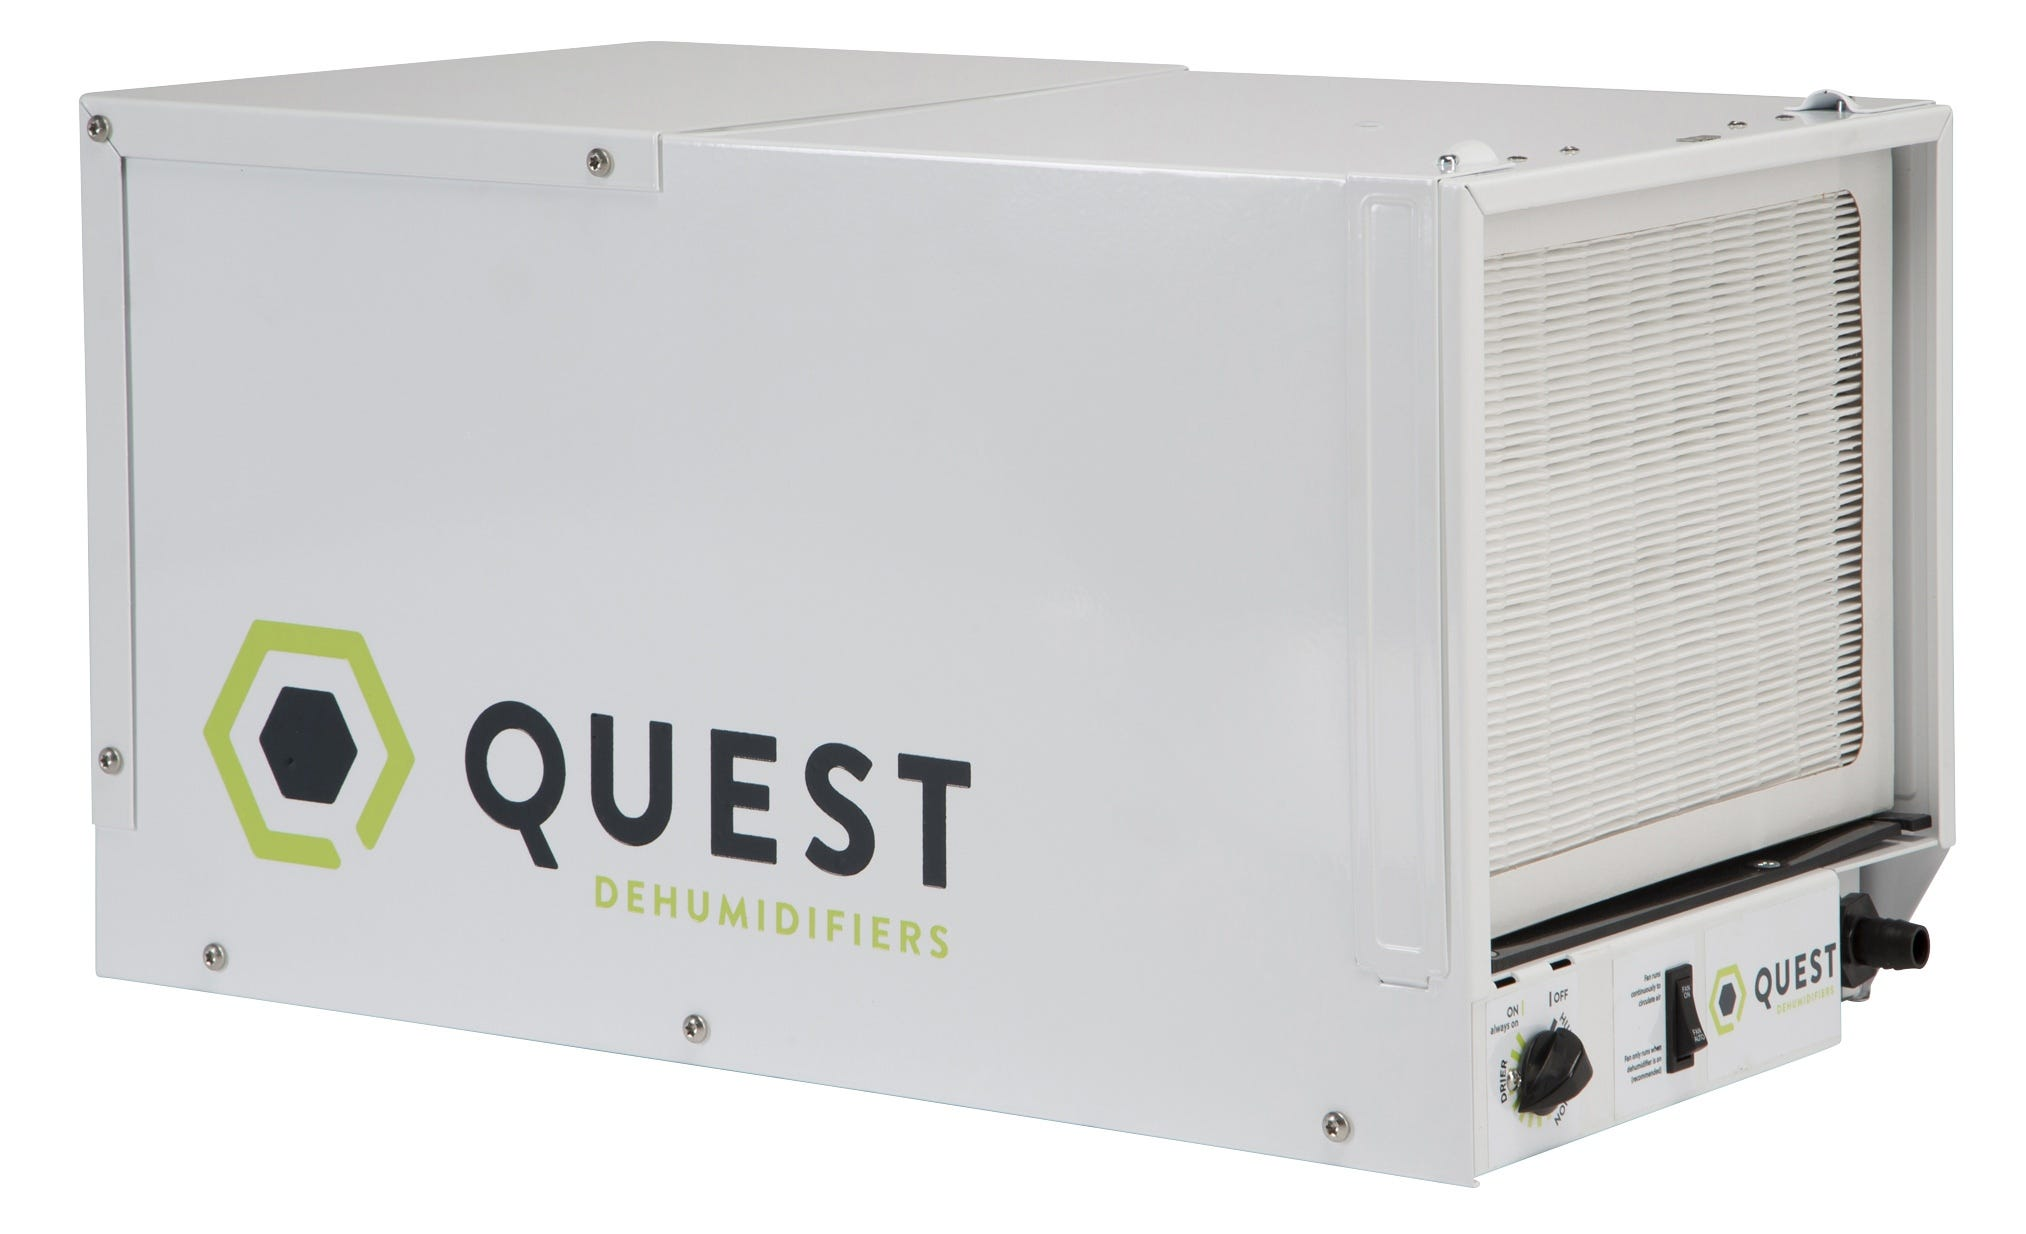 """Quest 70 Pint Dehumidifier - Factory Remanufactured - 3 Year Warranty These are Quest remanufactured (refurbished) units, not new units. These Quest units were remanufactured directly at the Quest factory, and get a 3 year warranty directly from the Quest brand. Many of the issues tended to be minor or cosmetic. Quest 70 Pint Dehumidifier The Quest 70 pint Dehumidifier is versatile. It can be placed overhead and out of the way of your grow operation. It can also be setup and run at ground level for your ease. The Quest 70 pint Dehumidifier was engineered to provide solid performance, improved value over previous models, and excellent energy efficiency. The Quest 70 pint Dehumidifier gives you excellent performance in challenging and constrained grow spaces. This model runs at 115 Volt, 60Hz, and 5.1 Amps. It is highly efficient at 2.37 L/kwh (5.0 Pints/kwh). It can be run between 33° F and 110° F. It is made in the USA and has a one year warranty for parts and labor and a five year warranty for the compressor and refrigerant system. Quest 70 Pint Dehumidifier Specifications: Part Number: 4033750 Blower: 150 CFM @ 0.0  WG Power: 680 Watts @ 80°F and 60% RH Supply Voltage: 110-120 VAC - 1 Phase - 60 Hz Amps: 5.1 Energy Factor: 2.37 L/kWh Operating Range: 33°F - 110°F Minimum Performance @ 80°F and 60% RH: Water Removal: 70 Pints/Day Efficiency: 5.0 Pints/kWh Air Filter: MERV-13, 12"""" x 12"""" x 1"""" Power Cord: 8' - 115 Volt Grounded Plug Drain Connection: 3/4"""" Threaded NPT or 5/8"""" Hose Barb Warranty: 1 year 100% parts and labor 5 year sealed refrigerant system Dimensions: 26.8  X 17.6  X 17.7  FIRST YEAR WARRANTY: Therma-Stor LLC warrants that, for one (1) year after date of original purchase the Quest 70 Dehumidifier will operate free from any defects in materials and workmanship. Therma-Stor LLC's exclusive obligation under this warranty will be to supply, without charge, a replacement for the dehumidifier which is found to be defective within a one (1) year period from """